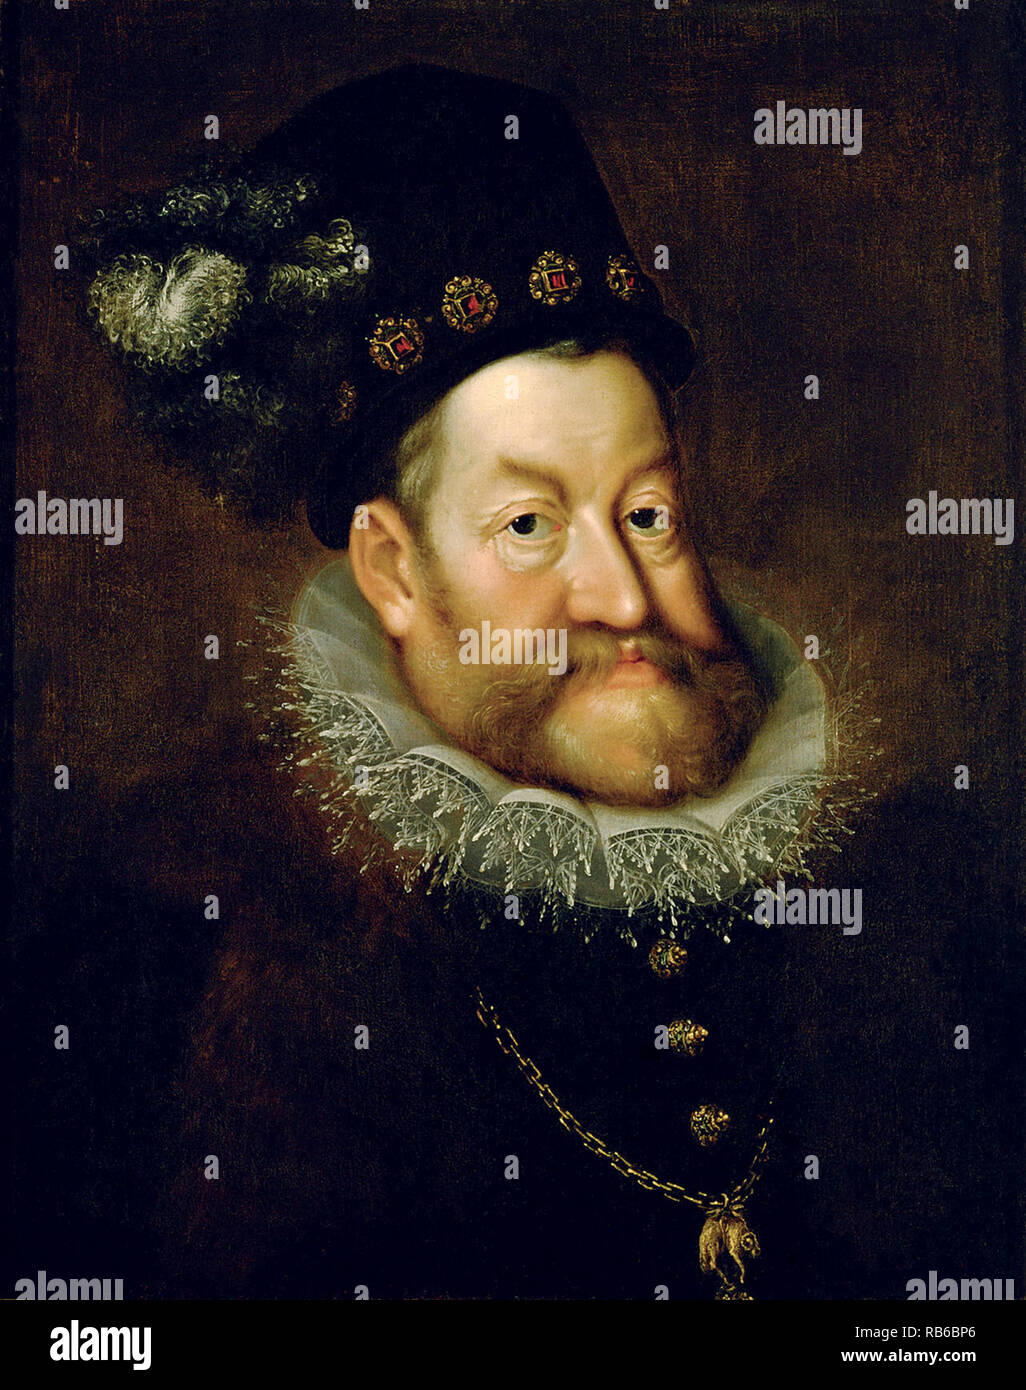 Rudolf II (1552 – 1612) Holy Roman Emperor, King of Hungary and Croatia (as Rudolf I, 1572–1608), King of Bohemia (1575–1608/1611) and Archduke of Austria (1576–1608). He was a member of the House of Habsburg. - Stock Image